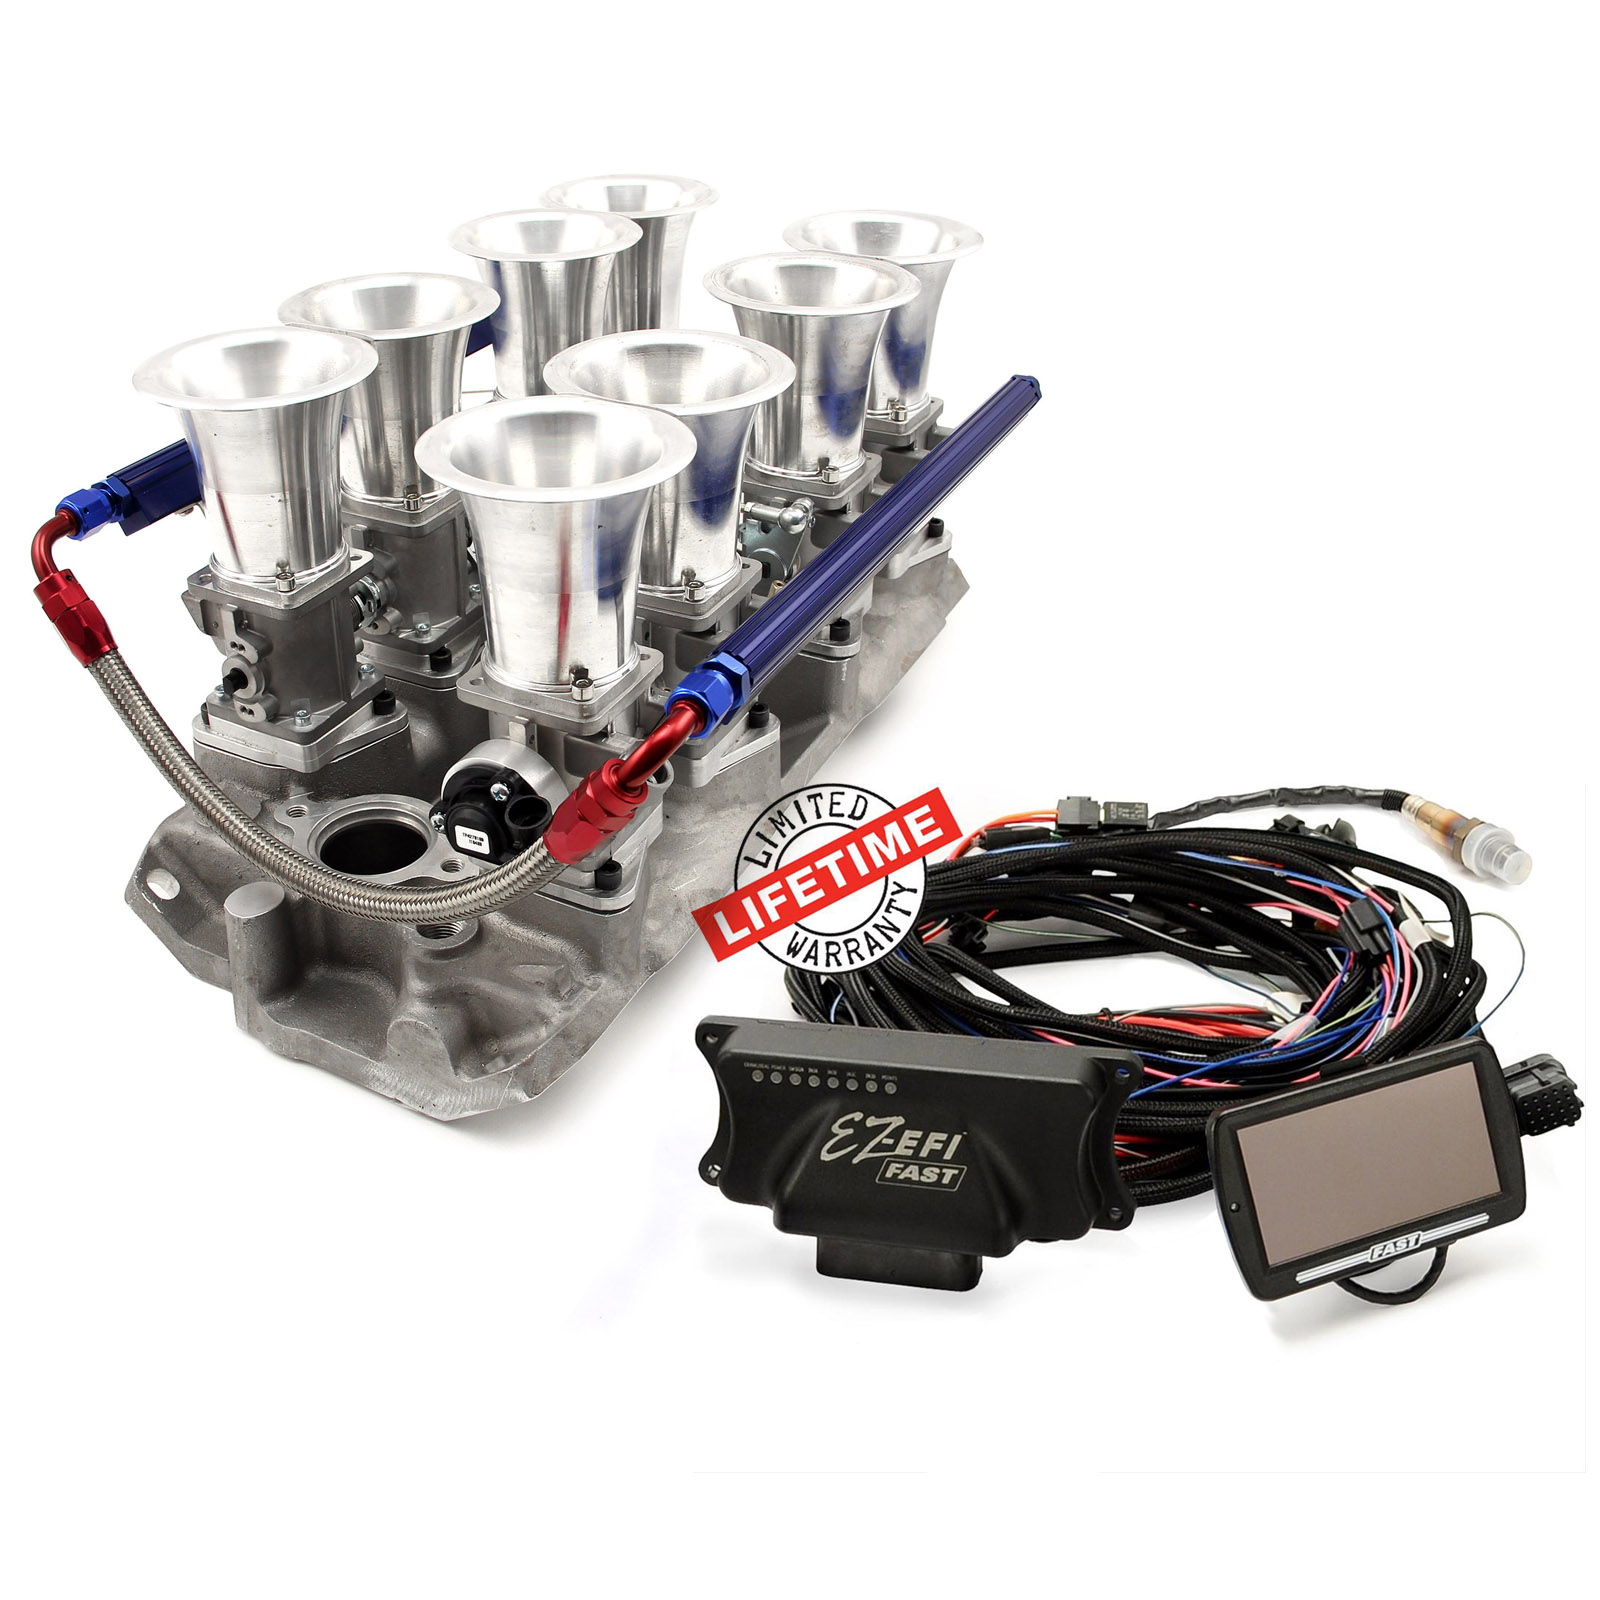 Chevy SBC 350 Manifold & FAST EZ-EFI 2.0 Self-Tuning Fuel